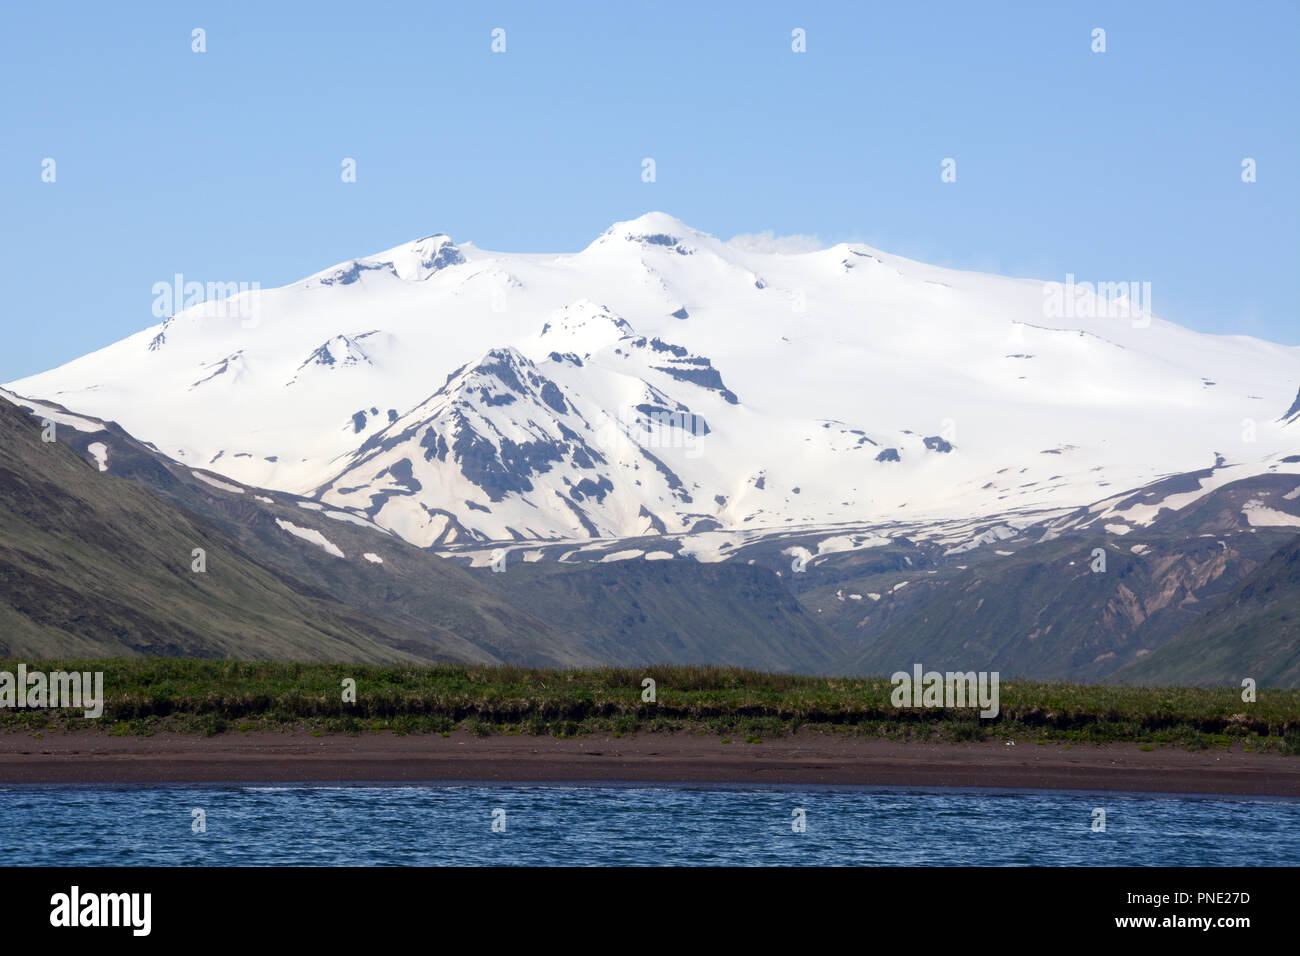 Makushin volcano, an ice covered and active stratovolcano on the island of Unalaska in the Aleutian Islands chain, southwest Alaska. - Stock Image